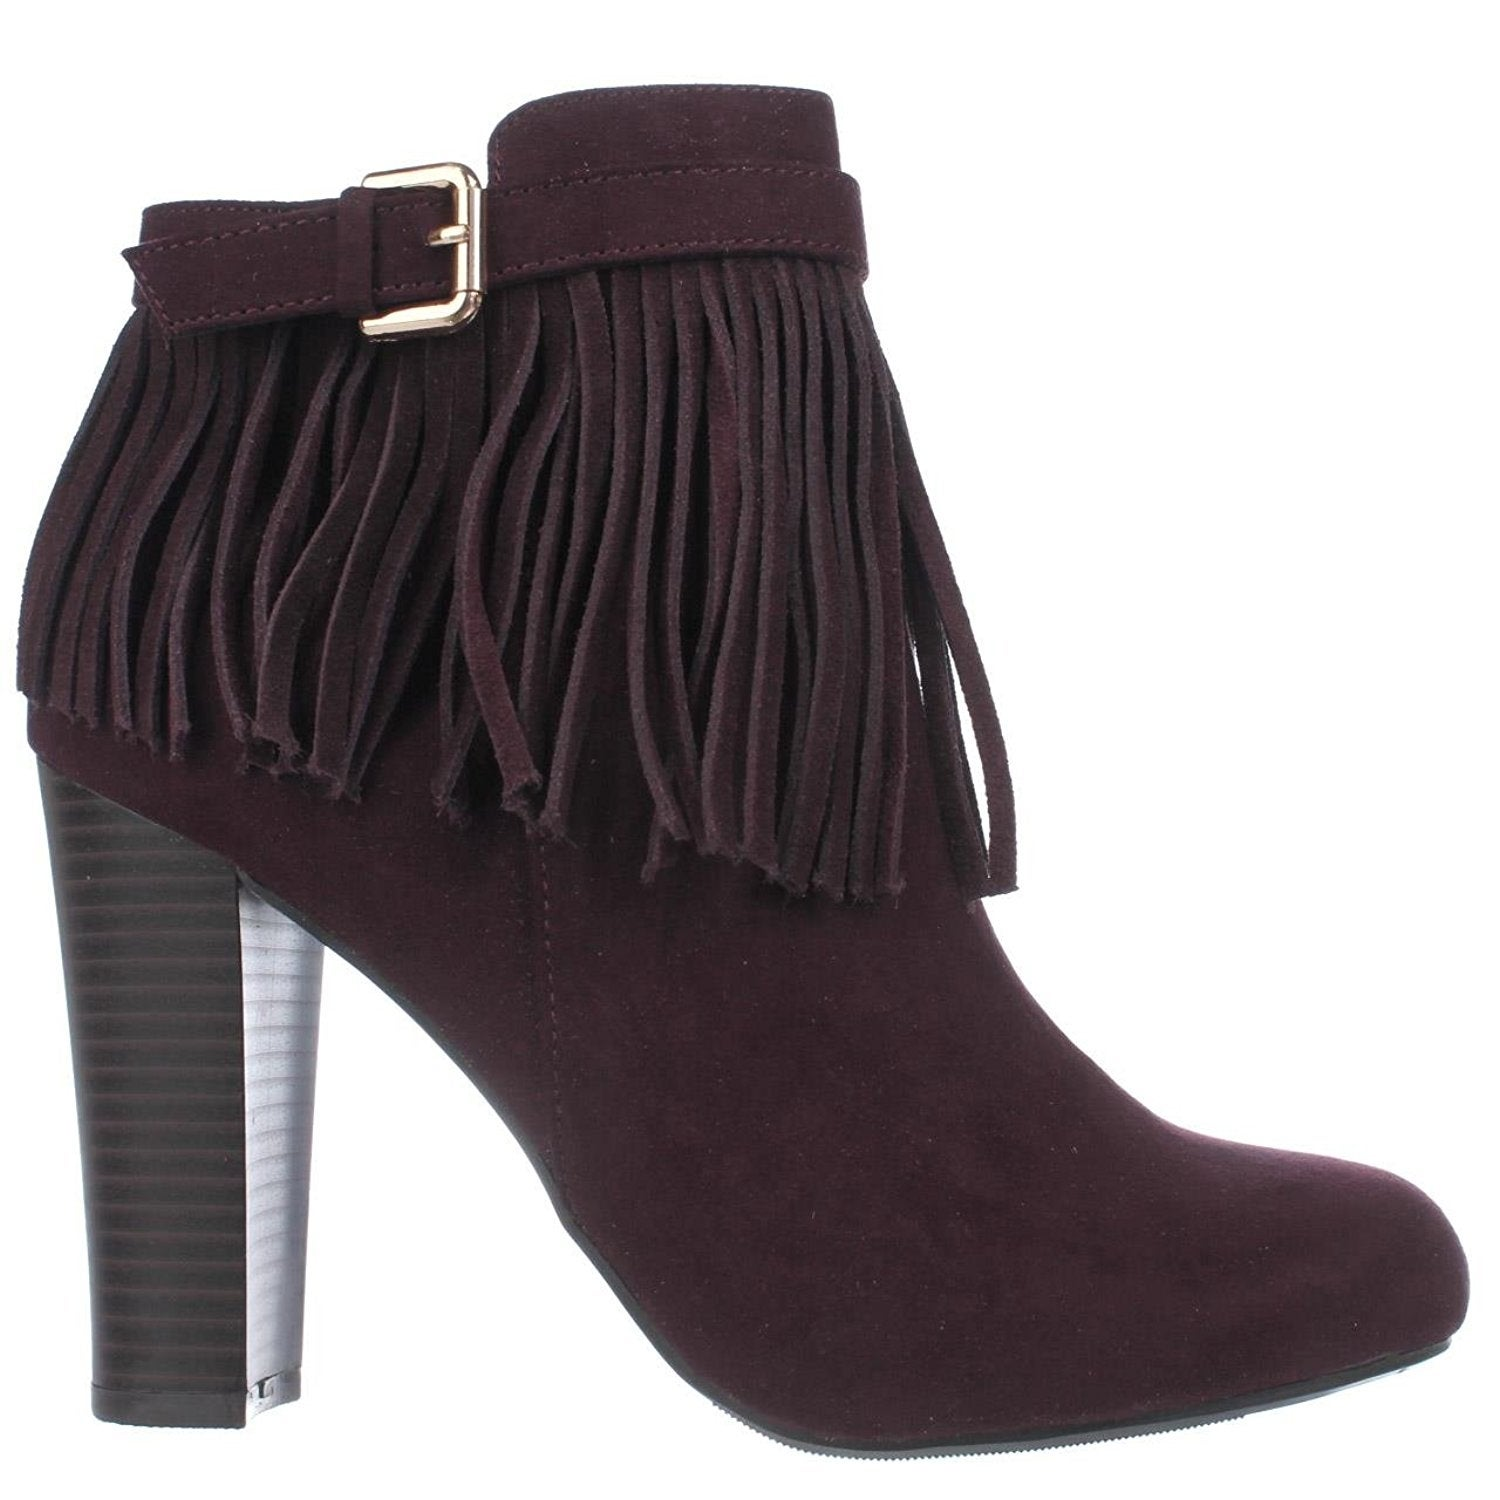 Womens Persia Suede Round Toe Ankle Fashion Boots